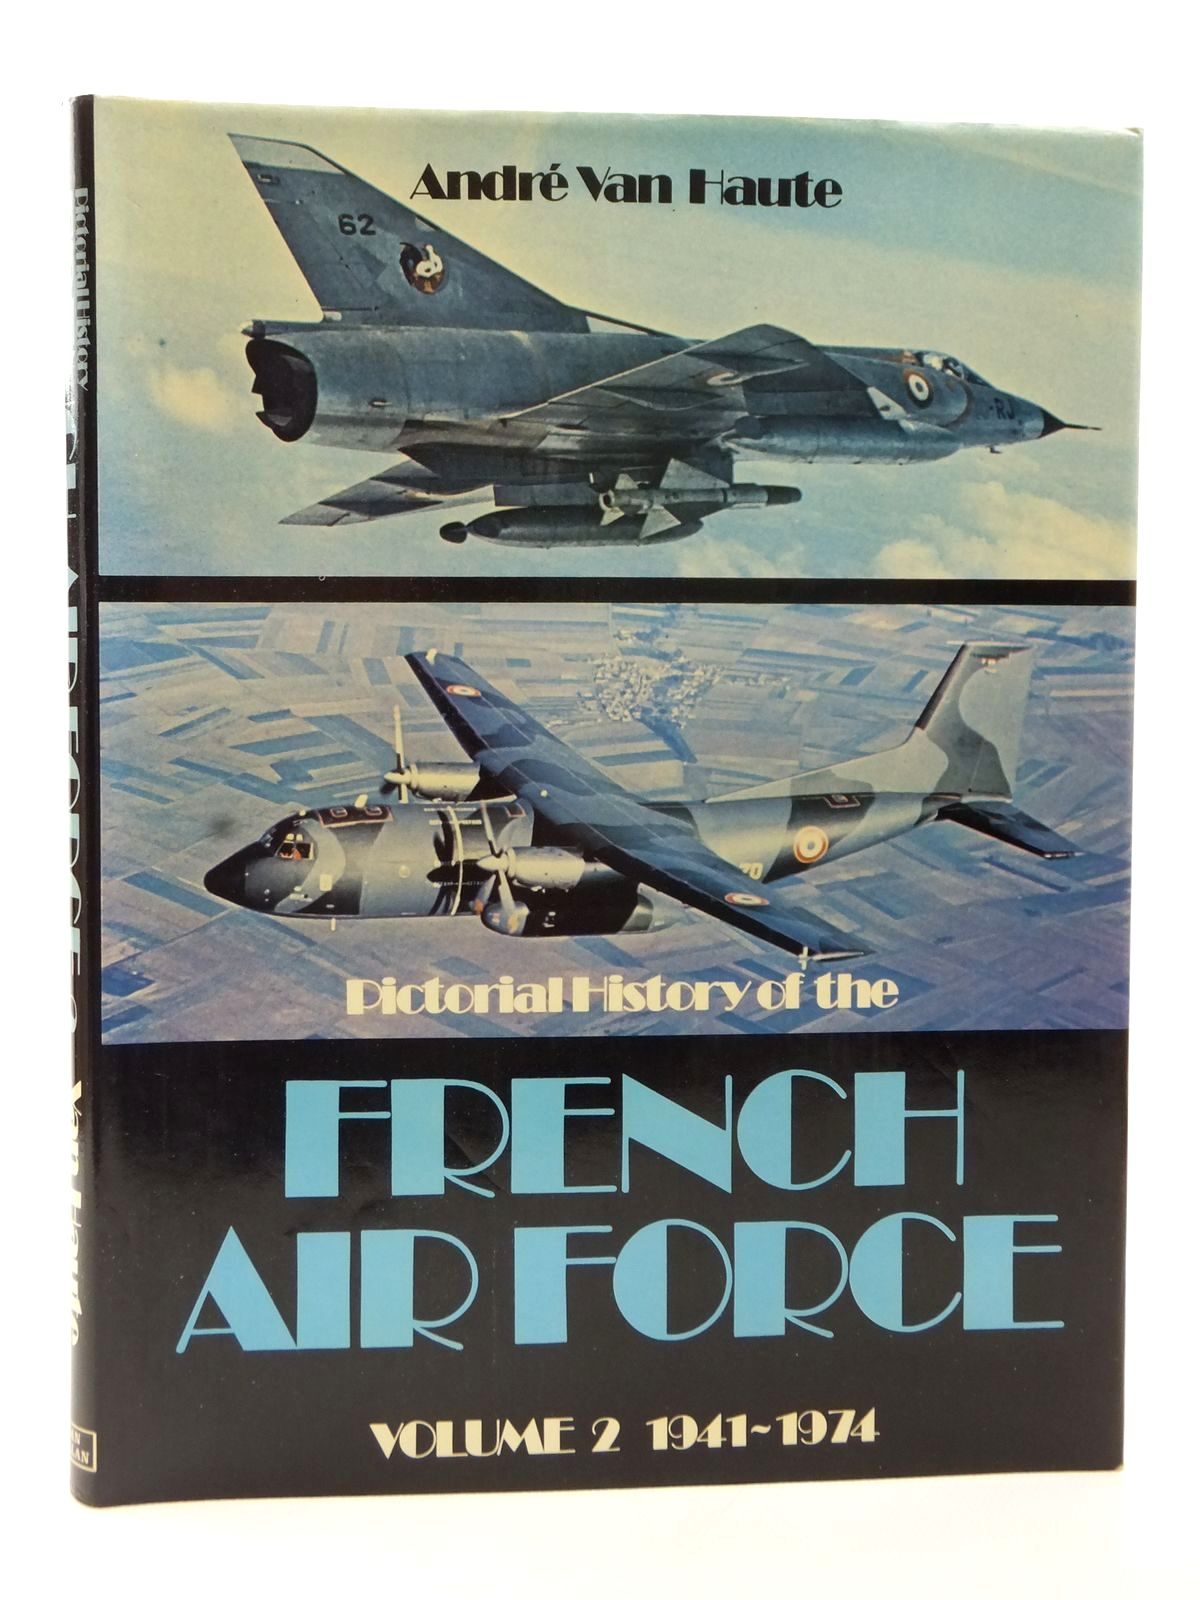 Photo of PICTORIAL HISTORY OF THE FRENCH AIR FORCE VOLUME 2 1941-1974 written by Van Haute, Andre published by Ian Allan Ltd. (STOCK CODE: 2122725)  for sale by Stella & Rose's Books